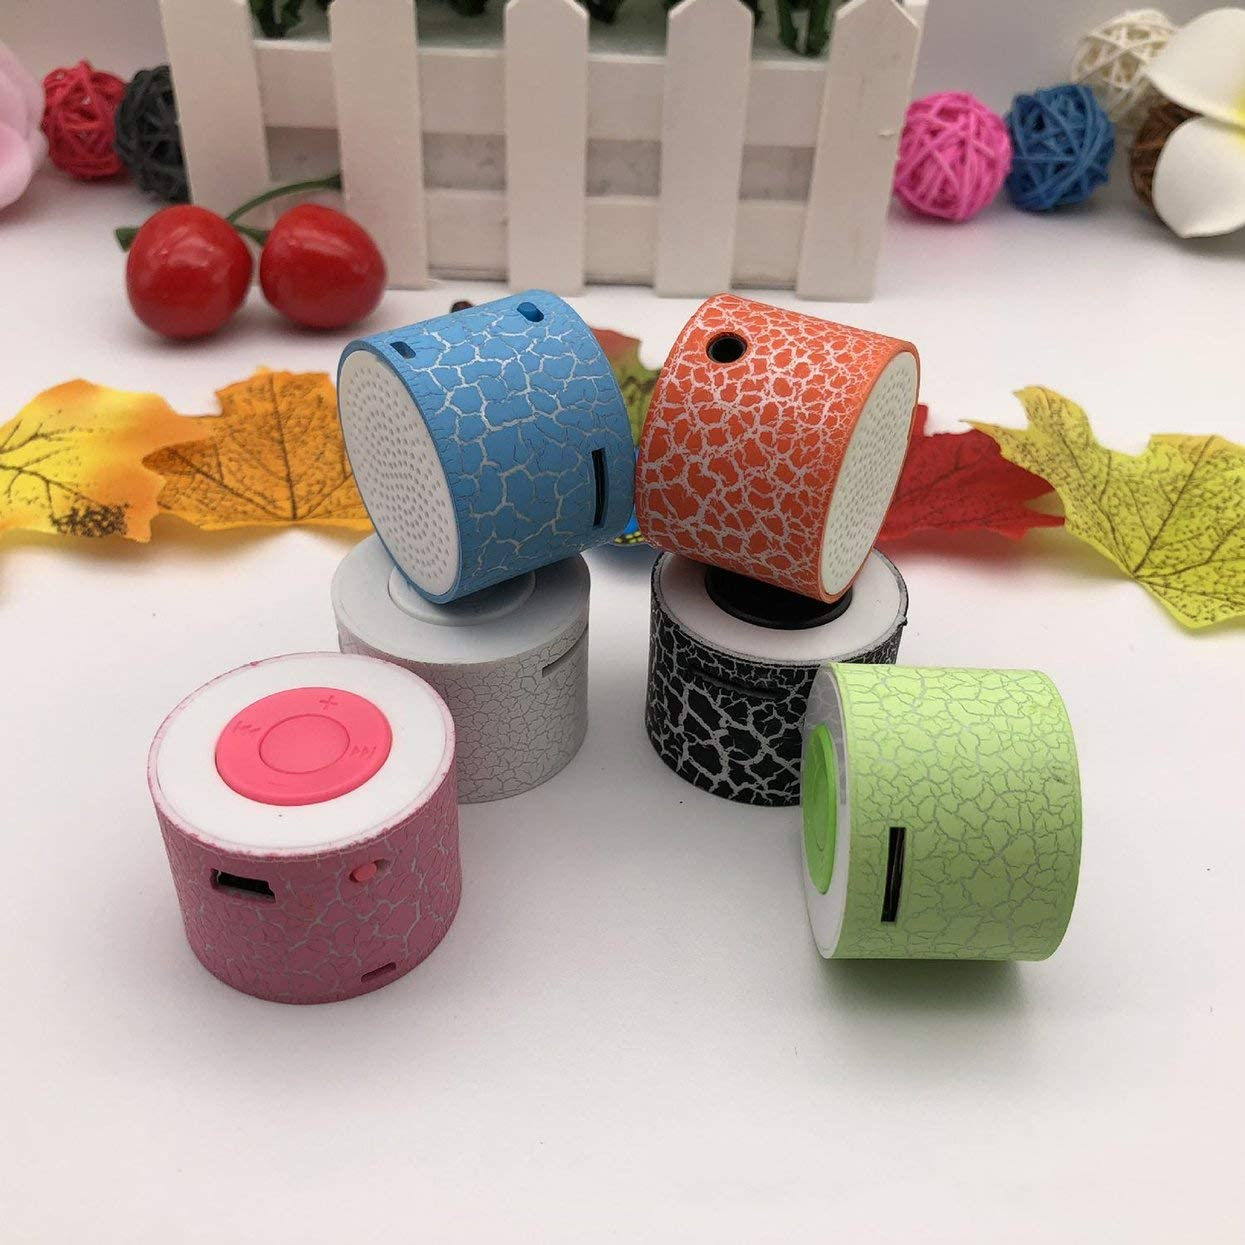 Detectorcatty MX-388 Mini Speaker USB Flash Drive Micro SD//TF Card Music MP3 Player FM Radio Porcelain Plastic Speakers